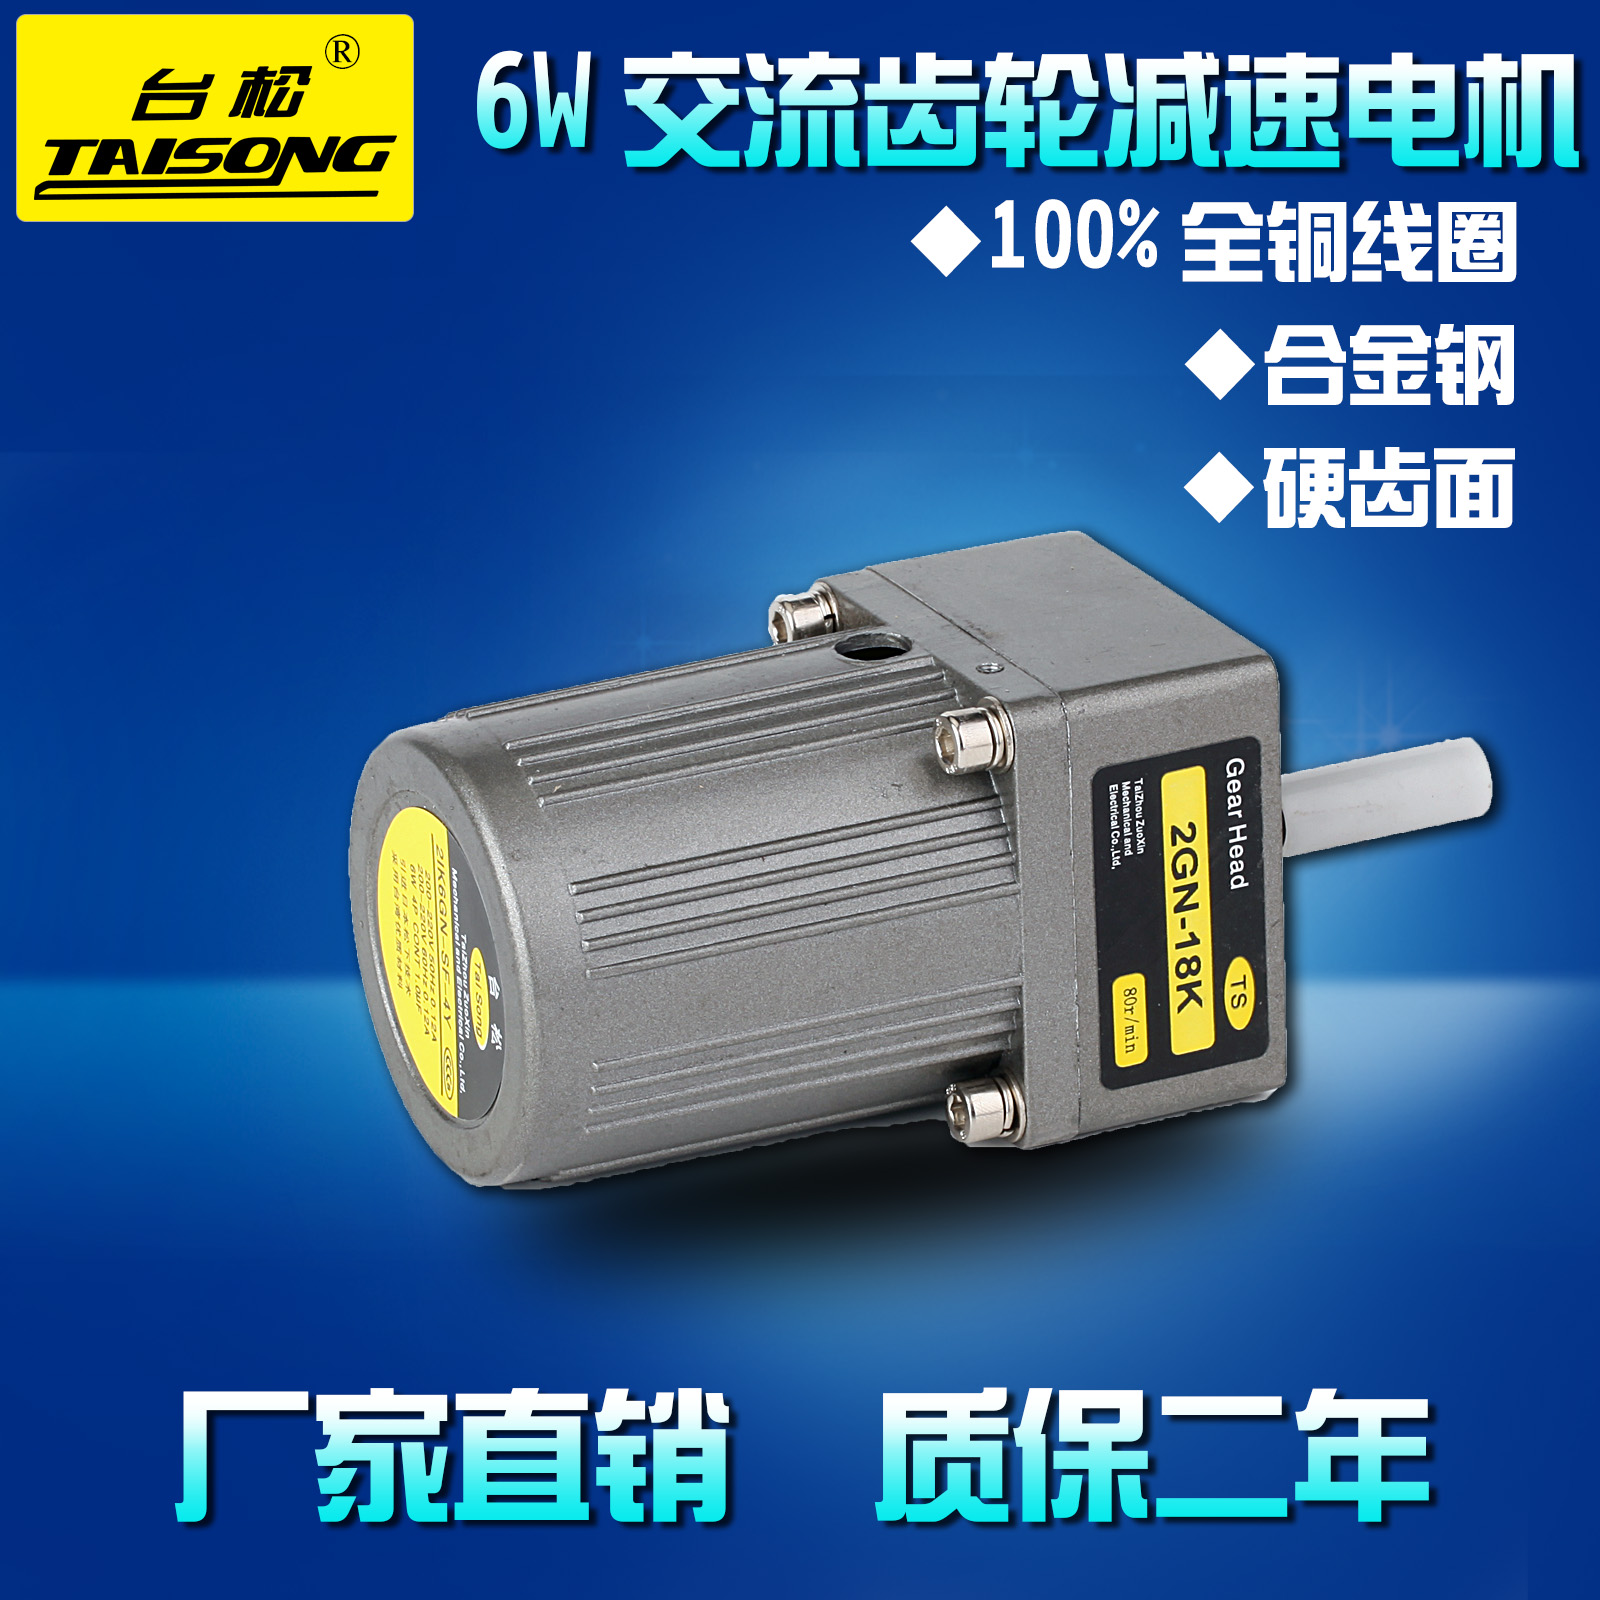 AC220V/380V 6W miniature  asynchronous gear speed control constant speed geared motor reversible control motorAC220V/380V 6W miniature  asynchronous gear speed control constant speed geared motor reversible control motor